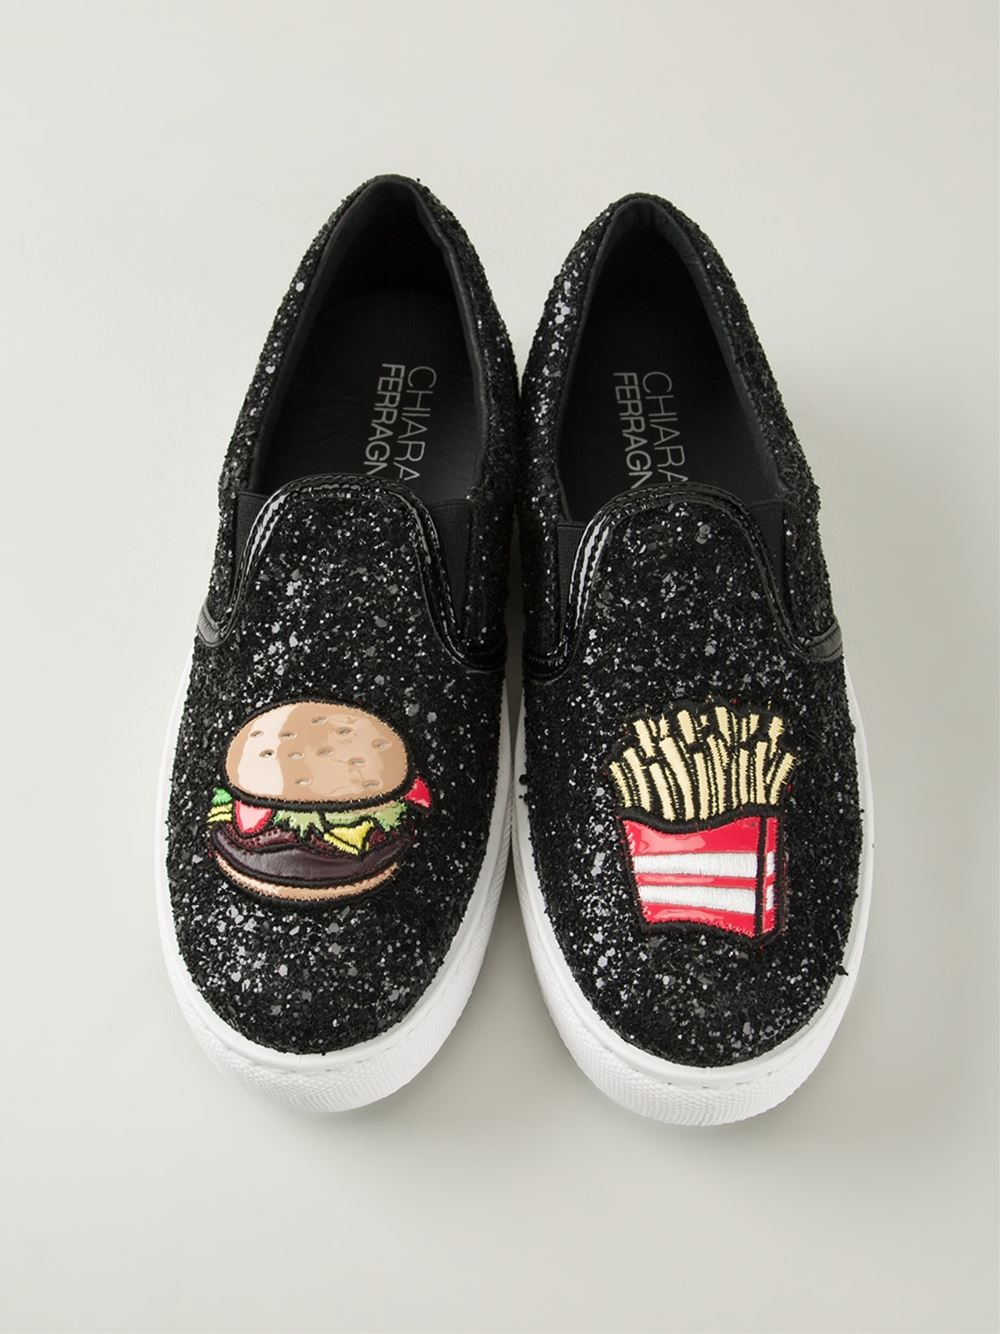 chiara ferragni glitter 39 fast food 39 slip ons in black lyst. Black Bedroom Furniture Sets. Home Design Ideas